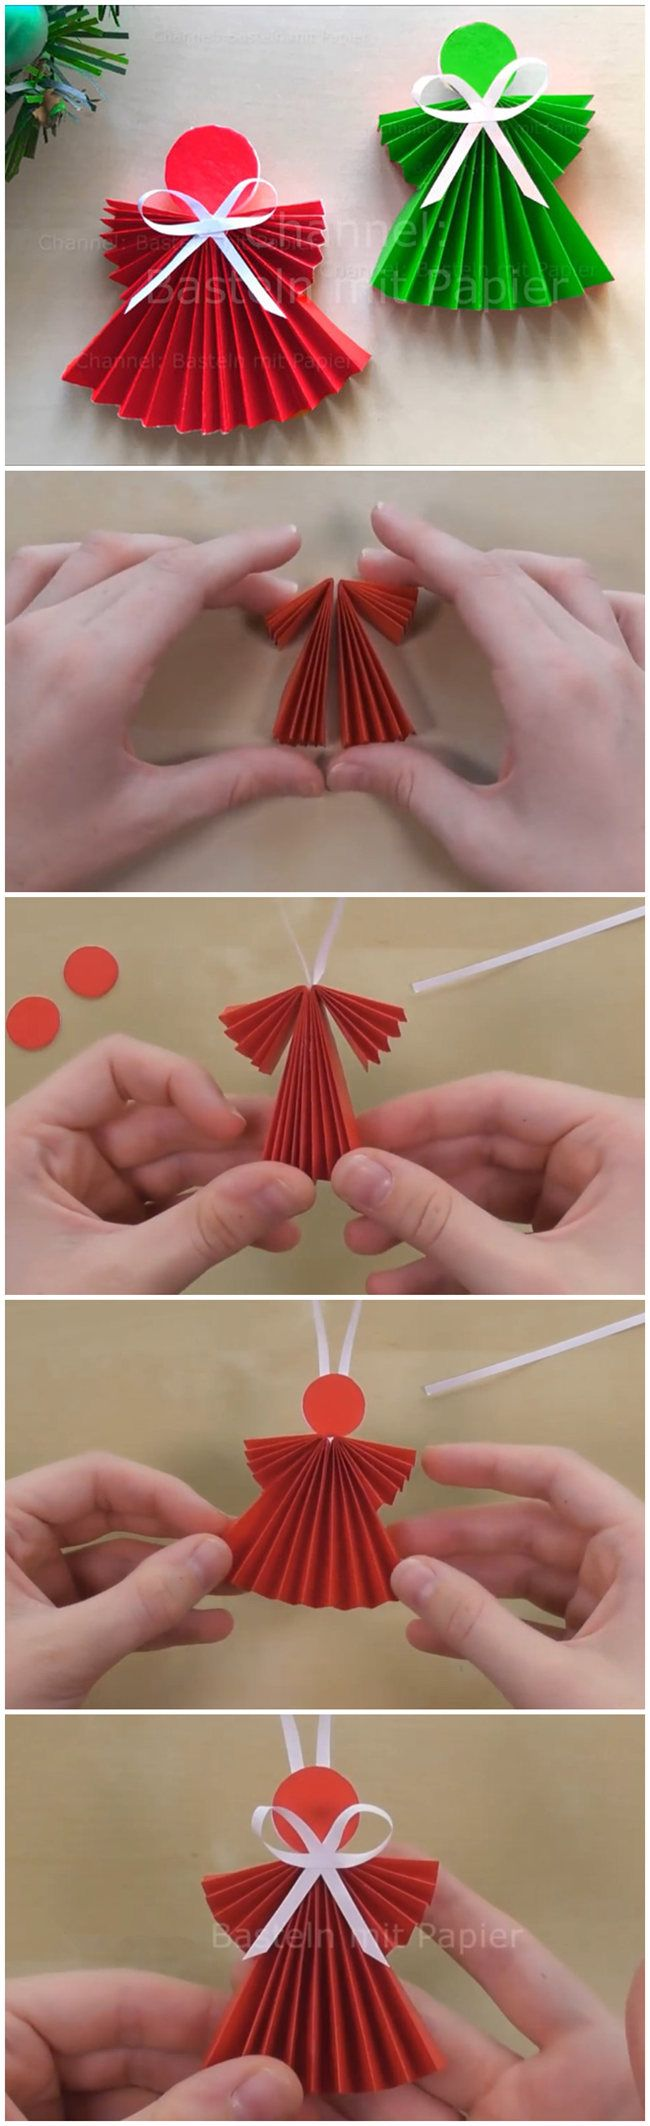 Easy Paper Angel Using Origami Paper Christmas Crafts Kids Christmas Ornaments Xmas Crafts